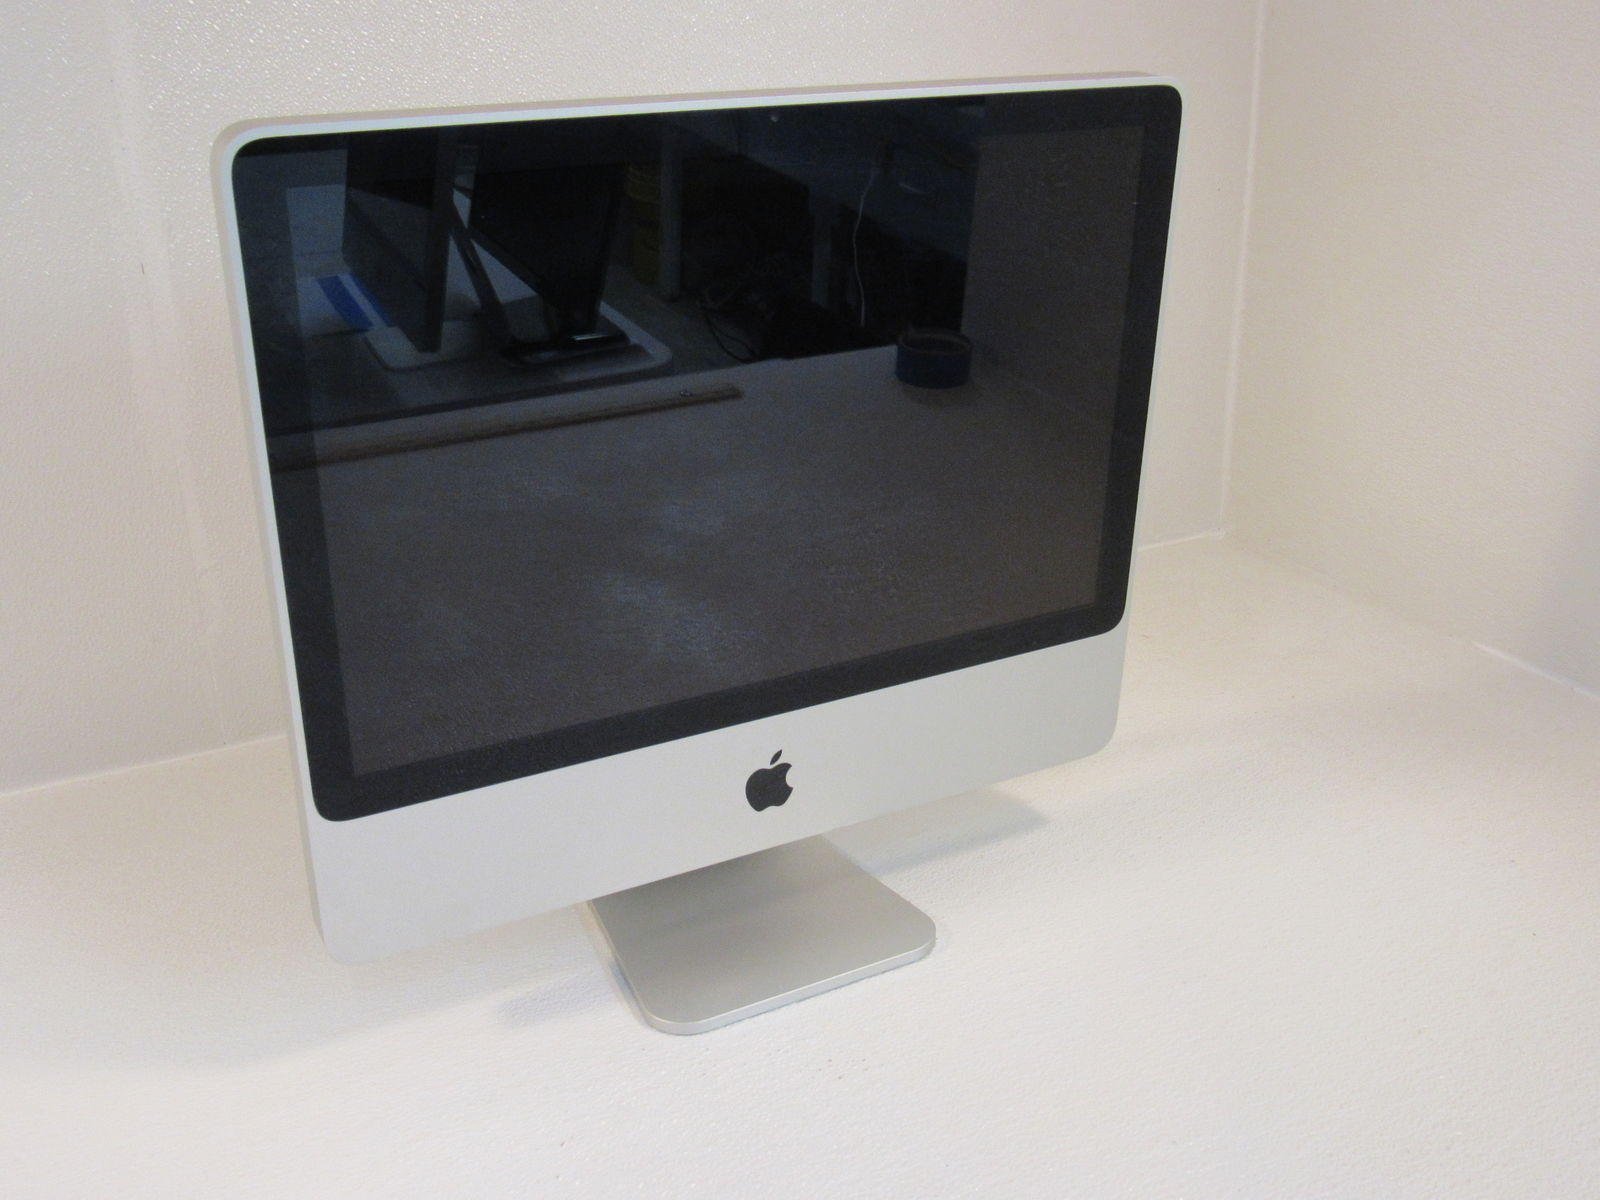 Apple iMac 8.1 20 Inch All In One Computer 2GHz Intel Core 2 Duo A1224